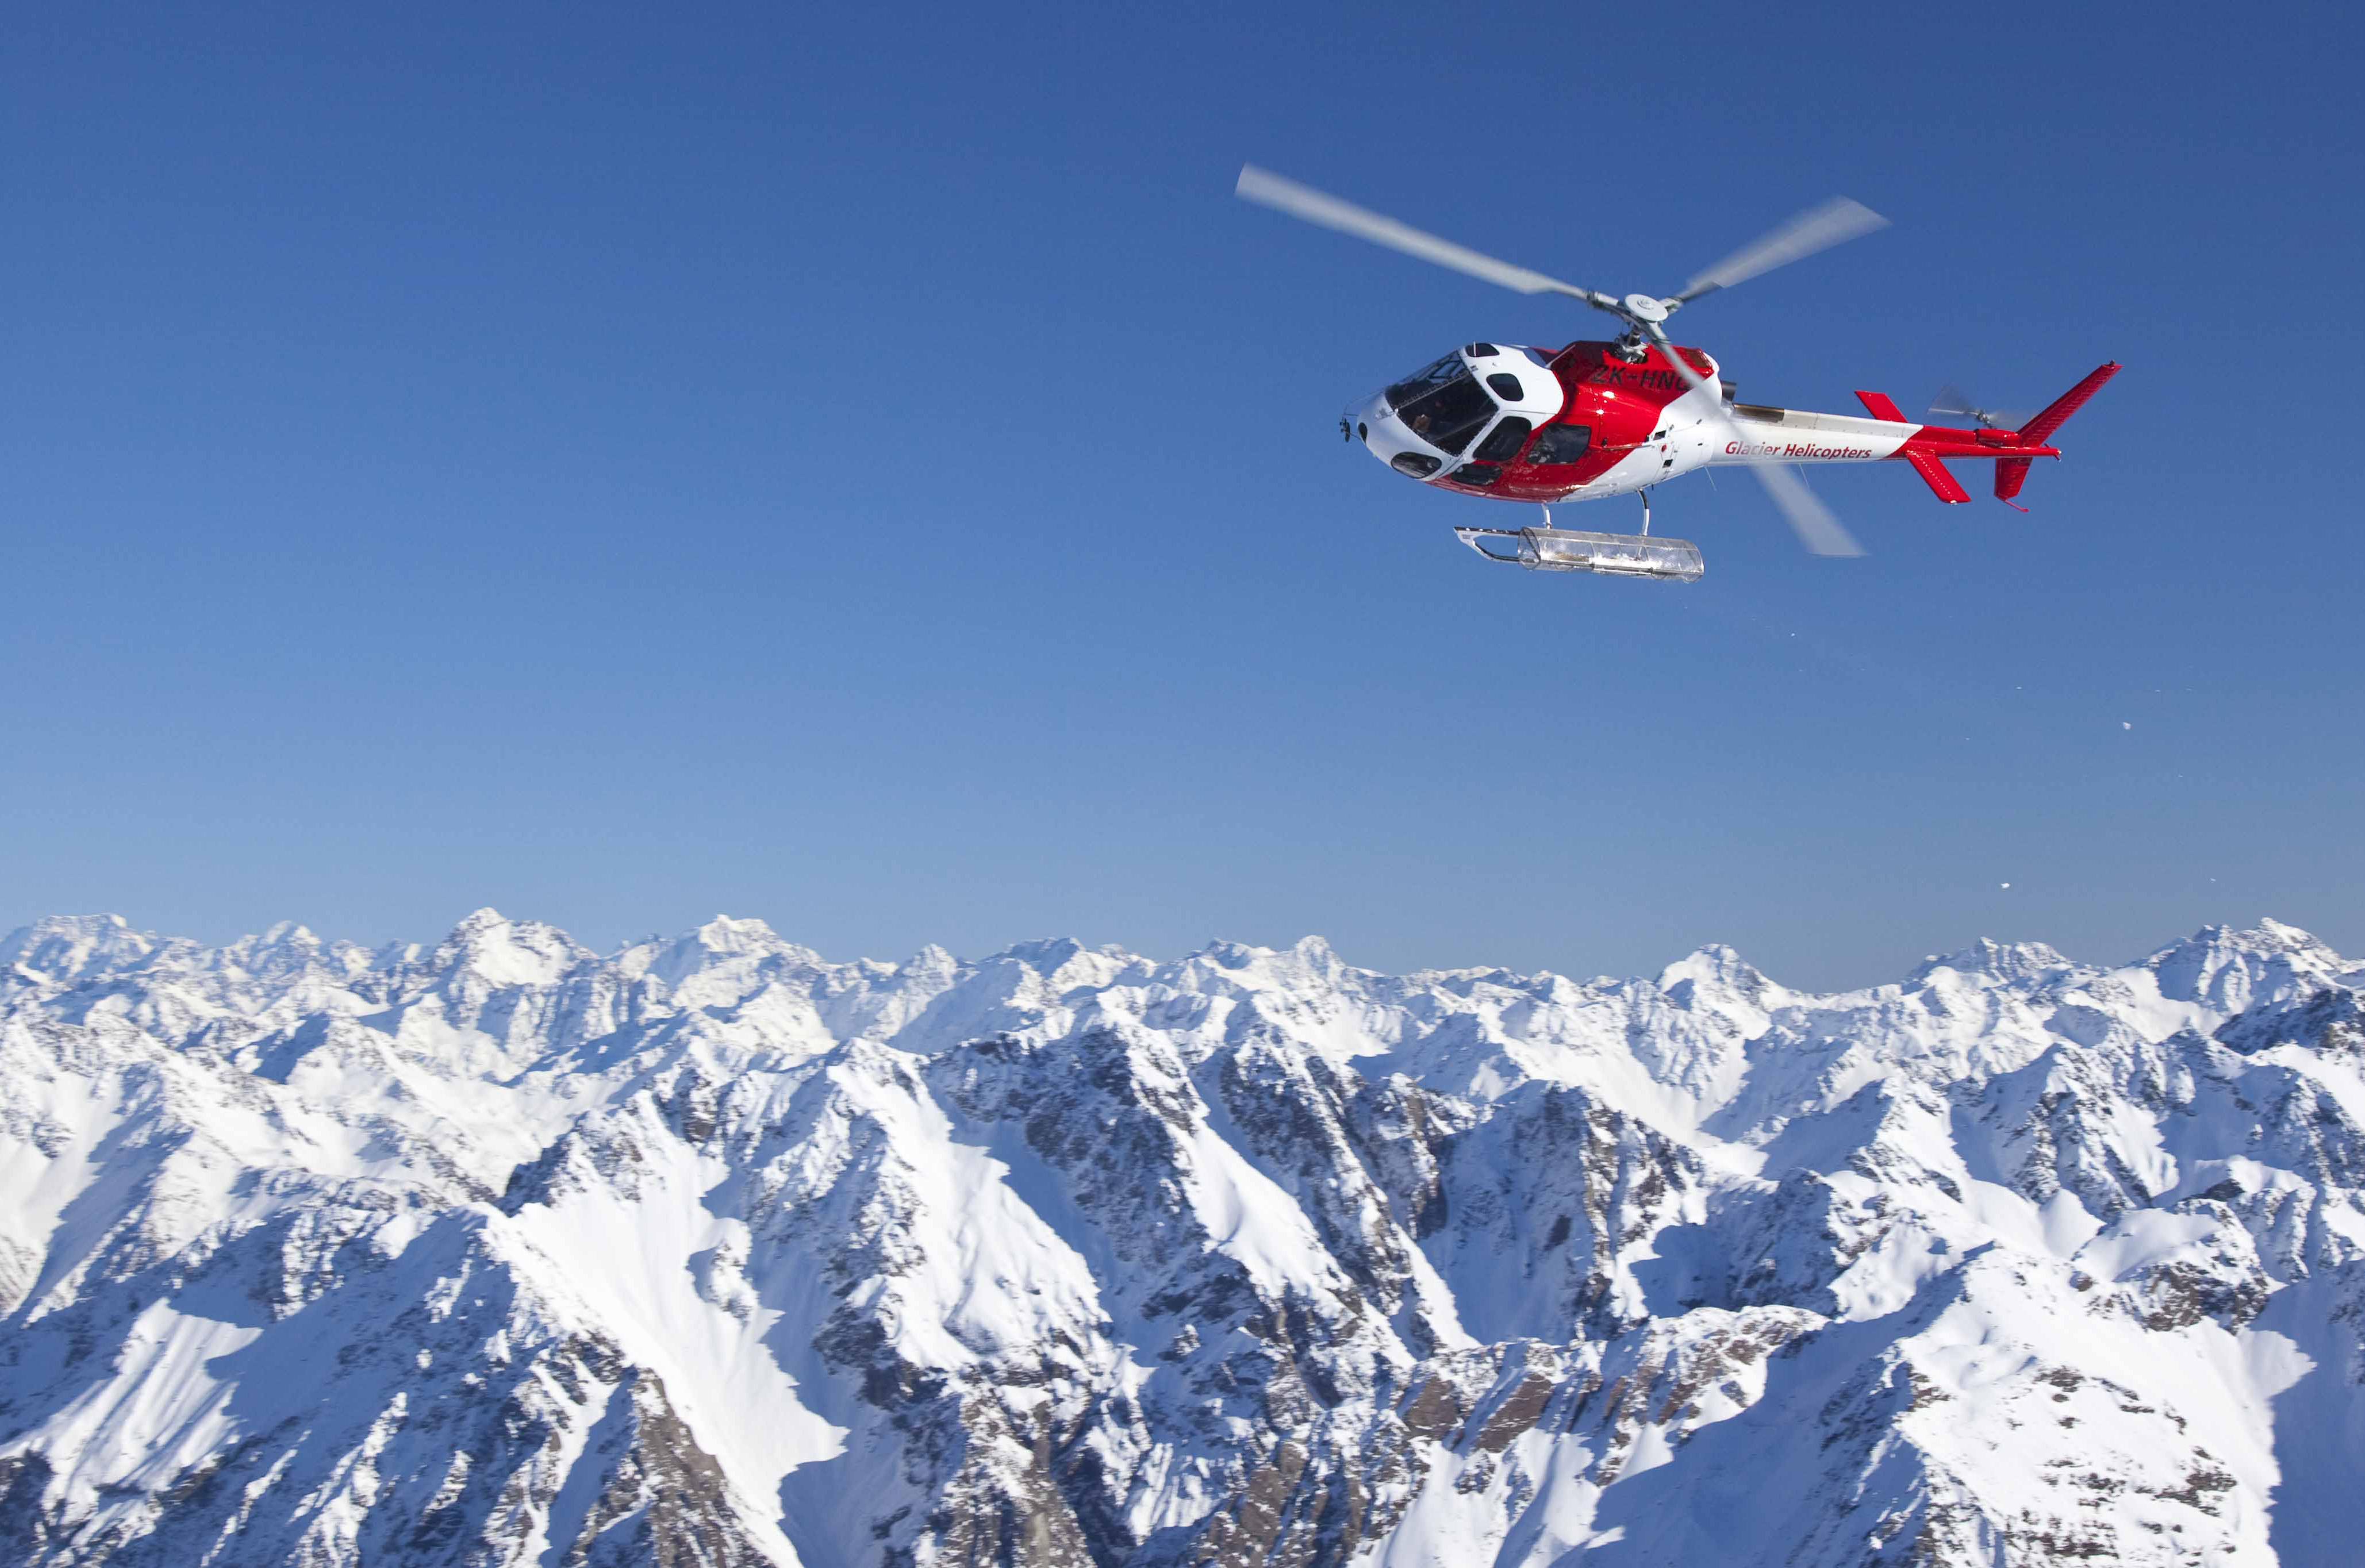 Helicopter in the Alps to your luxury and bespoke skiing adventure over Christmas